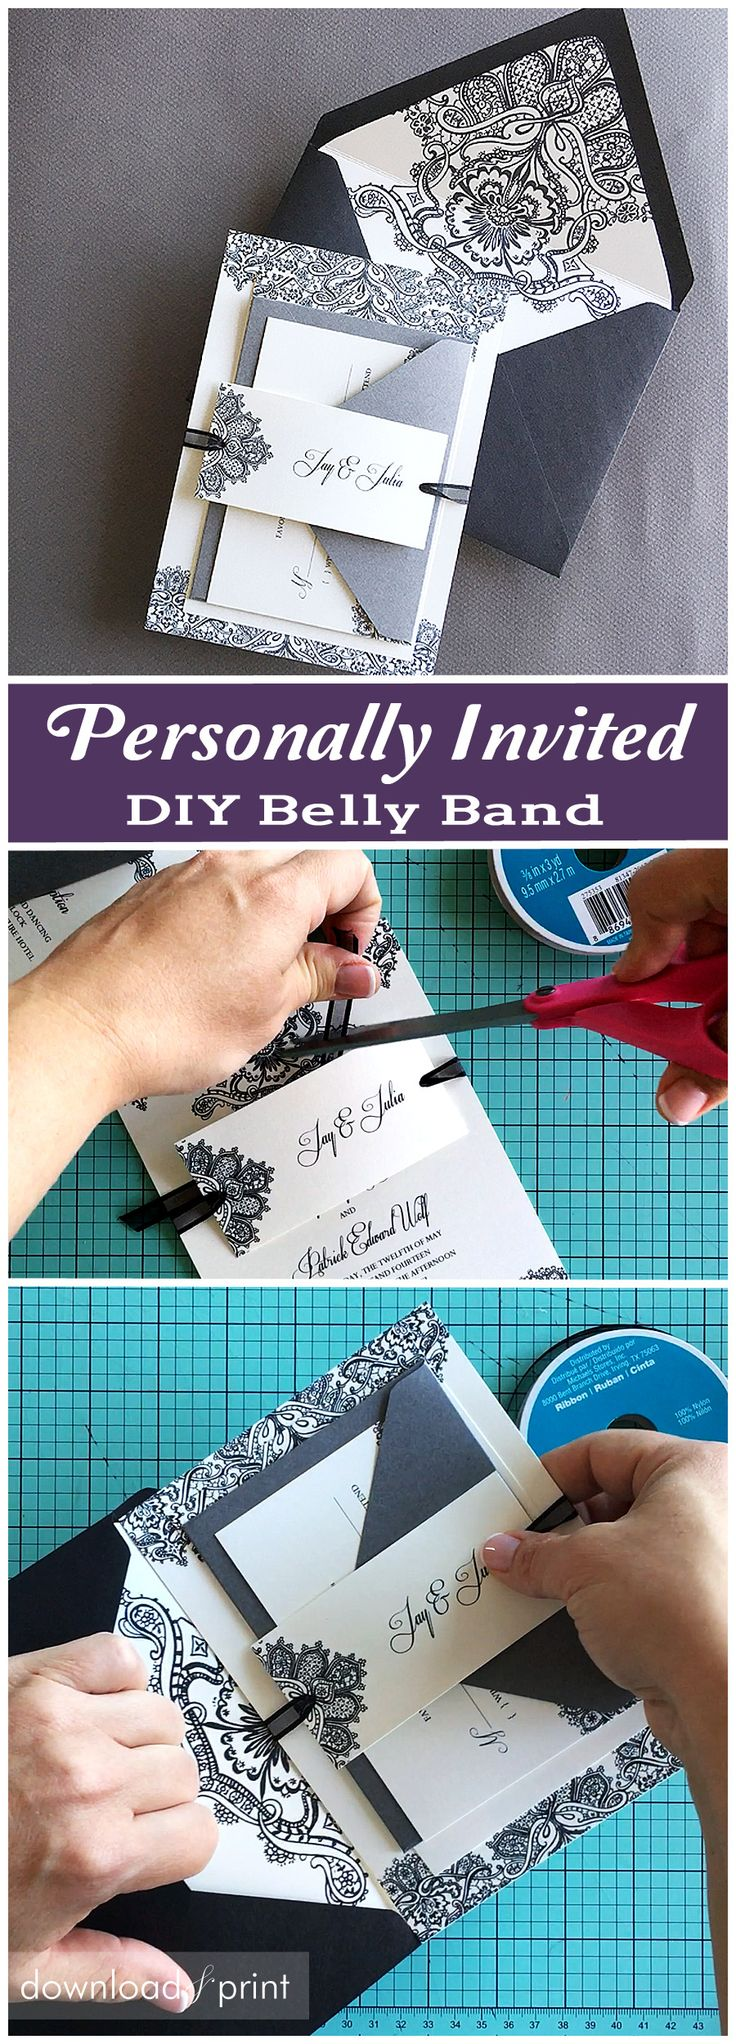 This DIY belly band has your guests' names on, a really nice personal touch. Allows you to be formal on the outer envelope, and more personal on the belly band. Also lets you list exactly who is invited to your wedding, like list kids if they are invited, add a +1 etc.